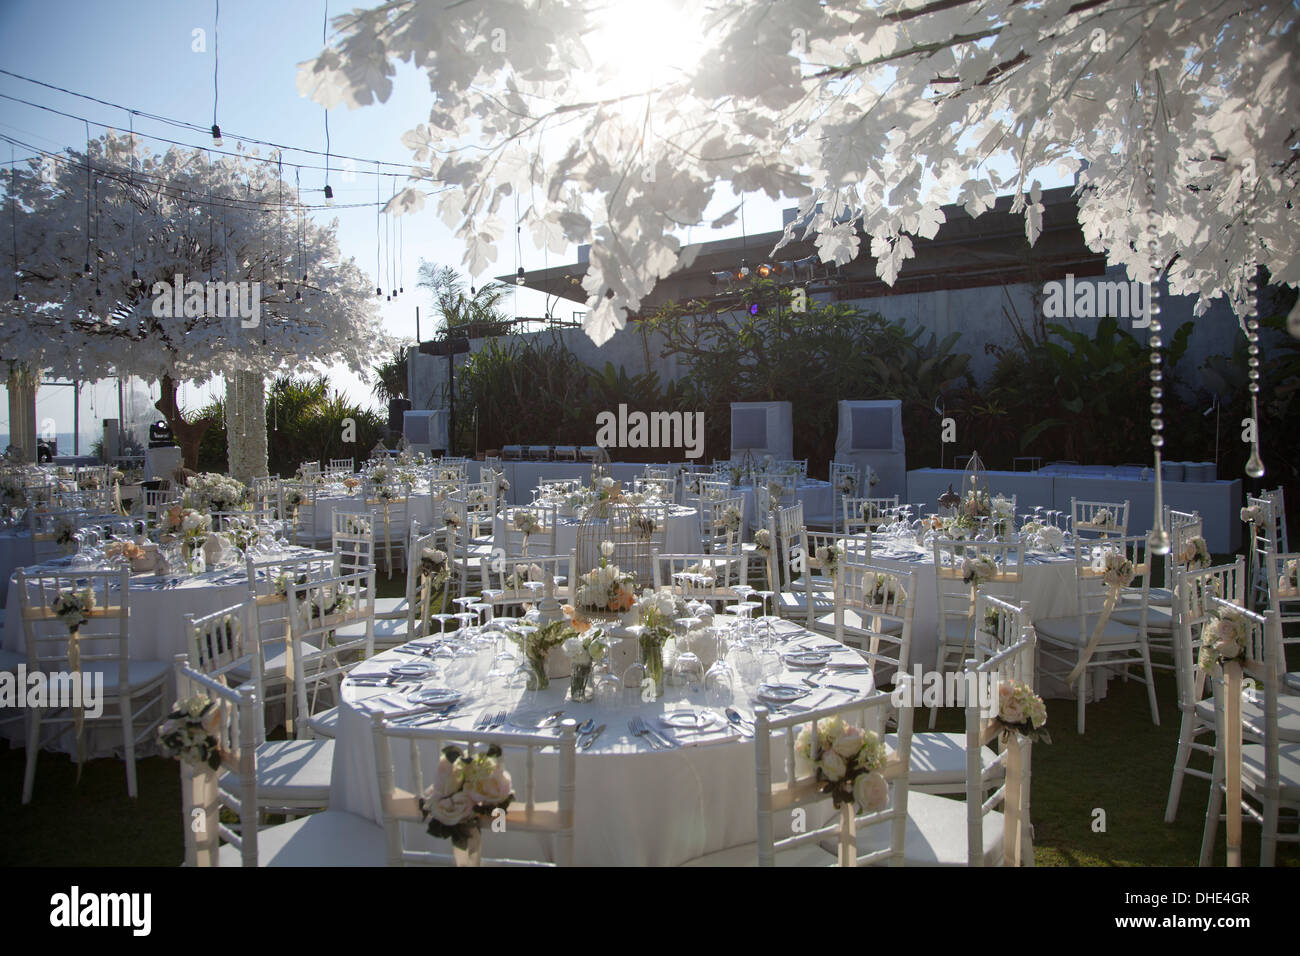 wedding reception decoration table chair trees eat eating plates ...